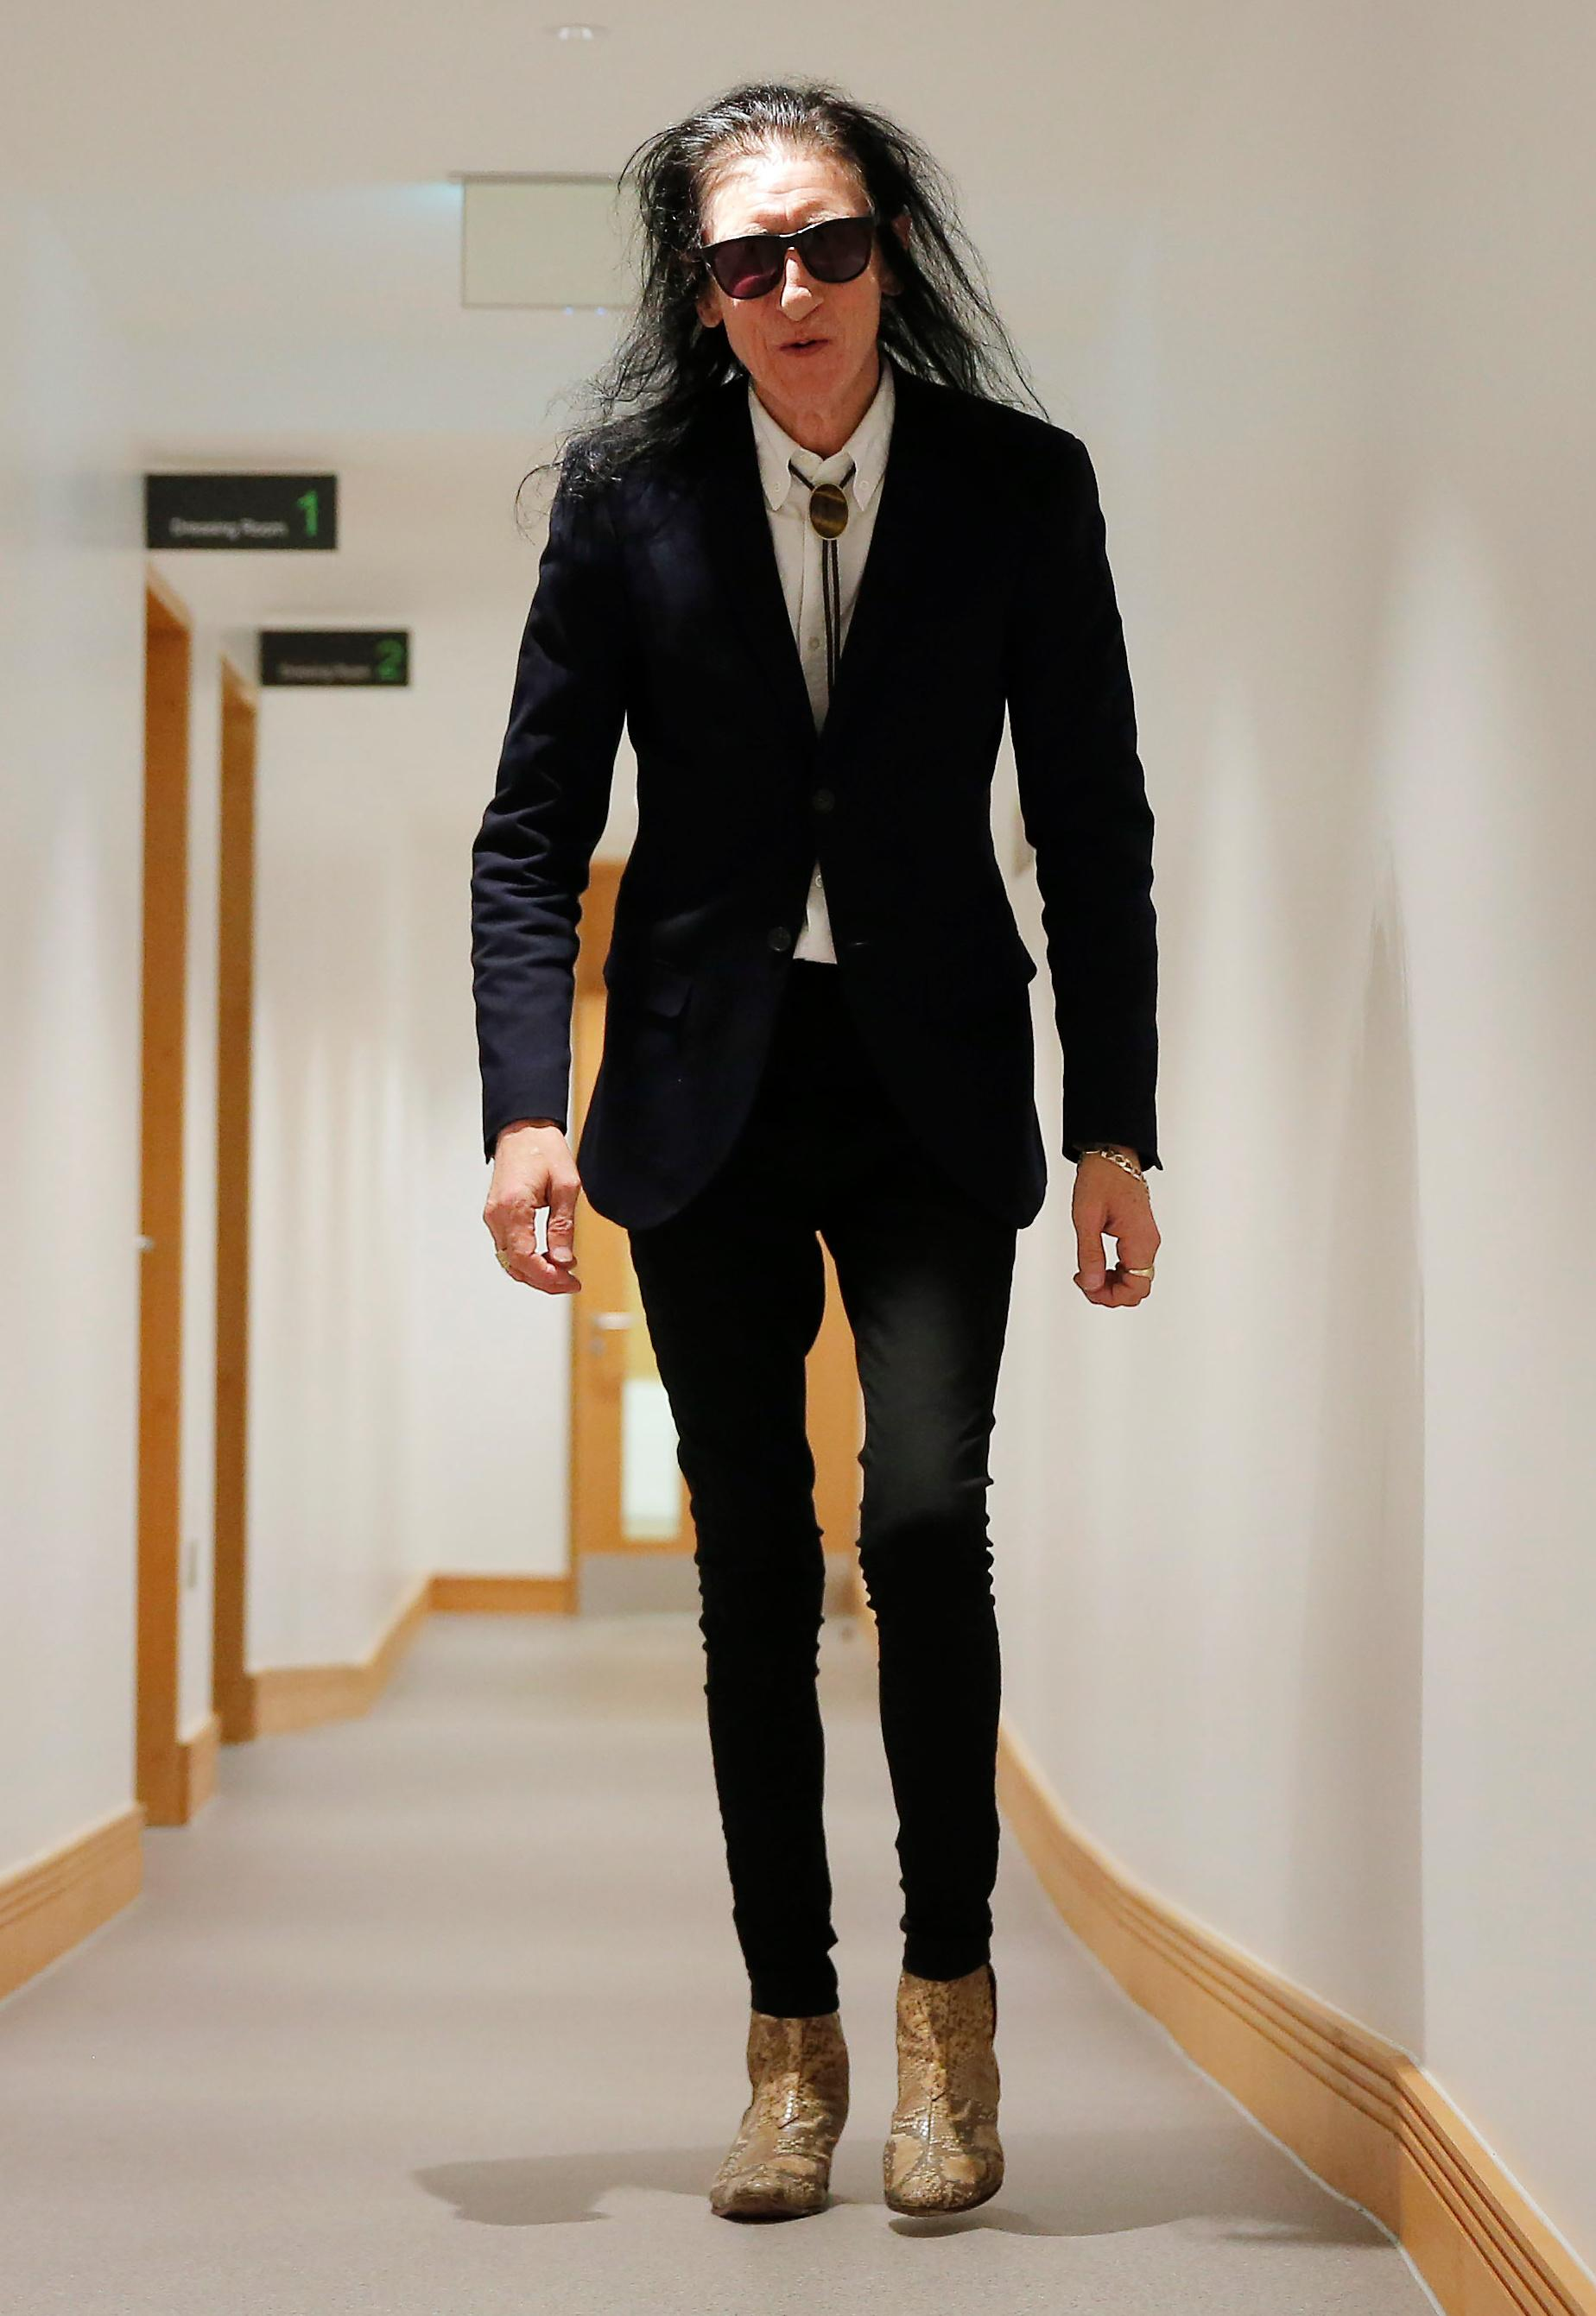 John Cooper Clarke: 'I've dressed the same way since 1965'